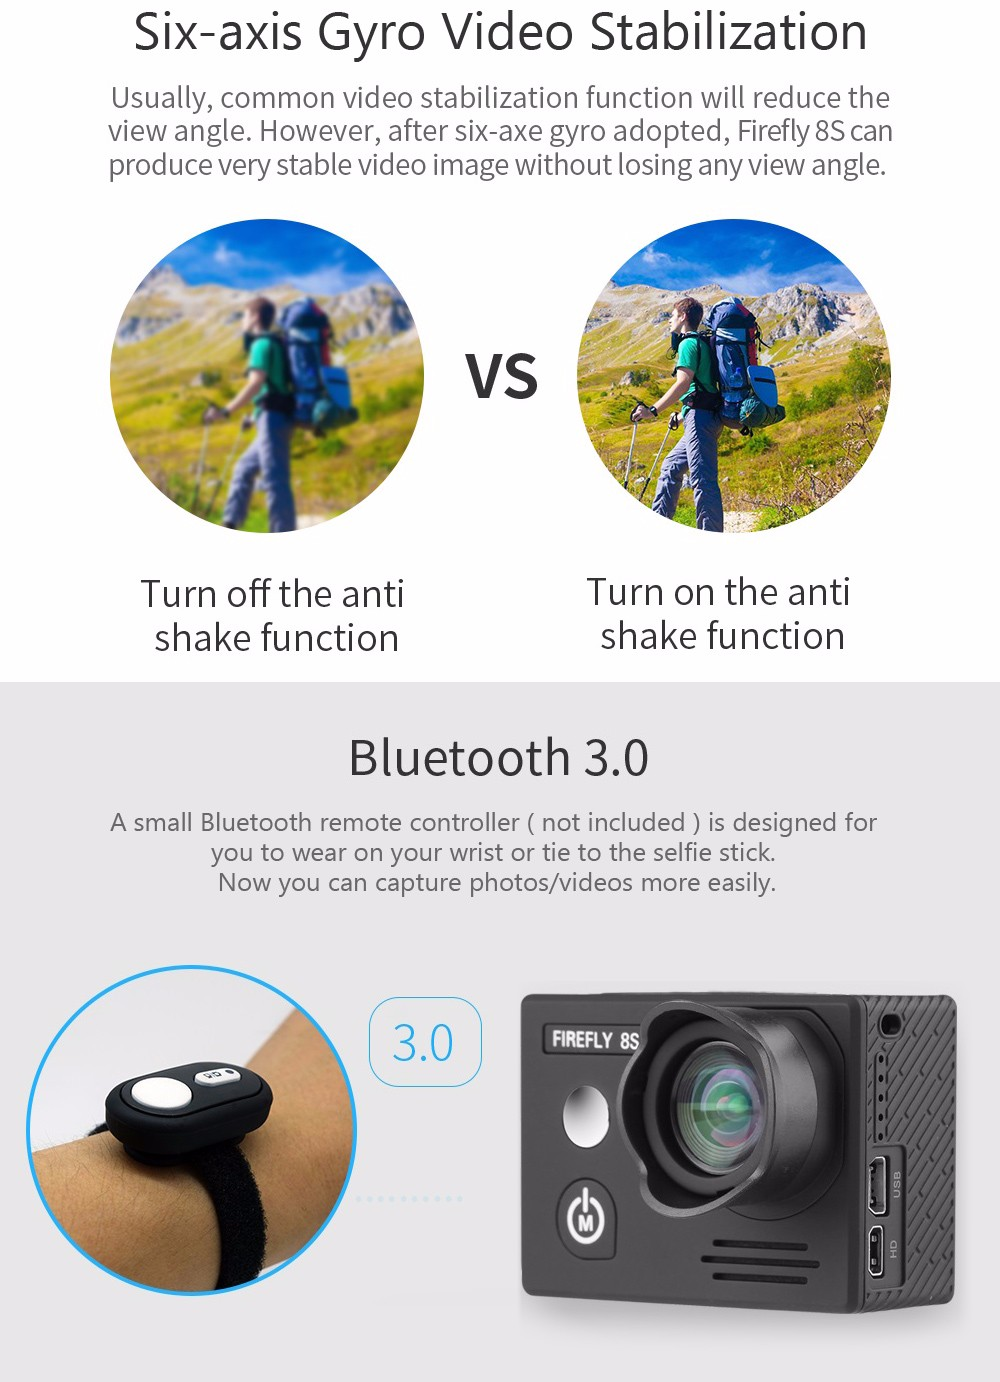 HawKeye Firefly 8S 4K Bluetooth WiFi Action Sports Camera with 170 Degree FOV / Ambarella A12S75 Chipset